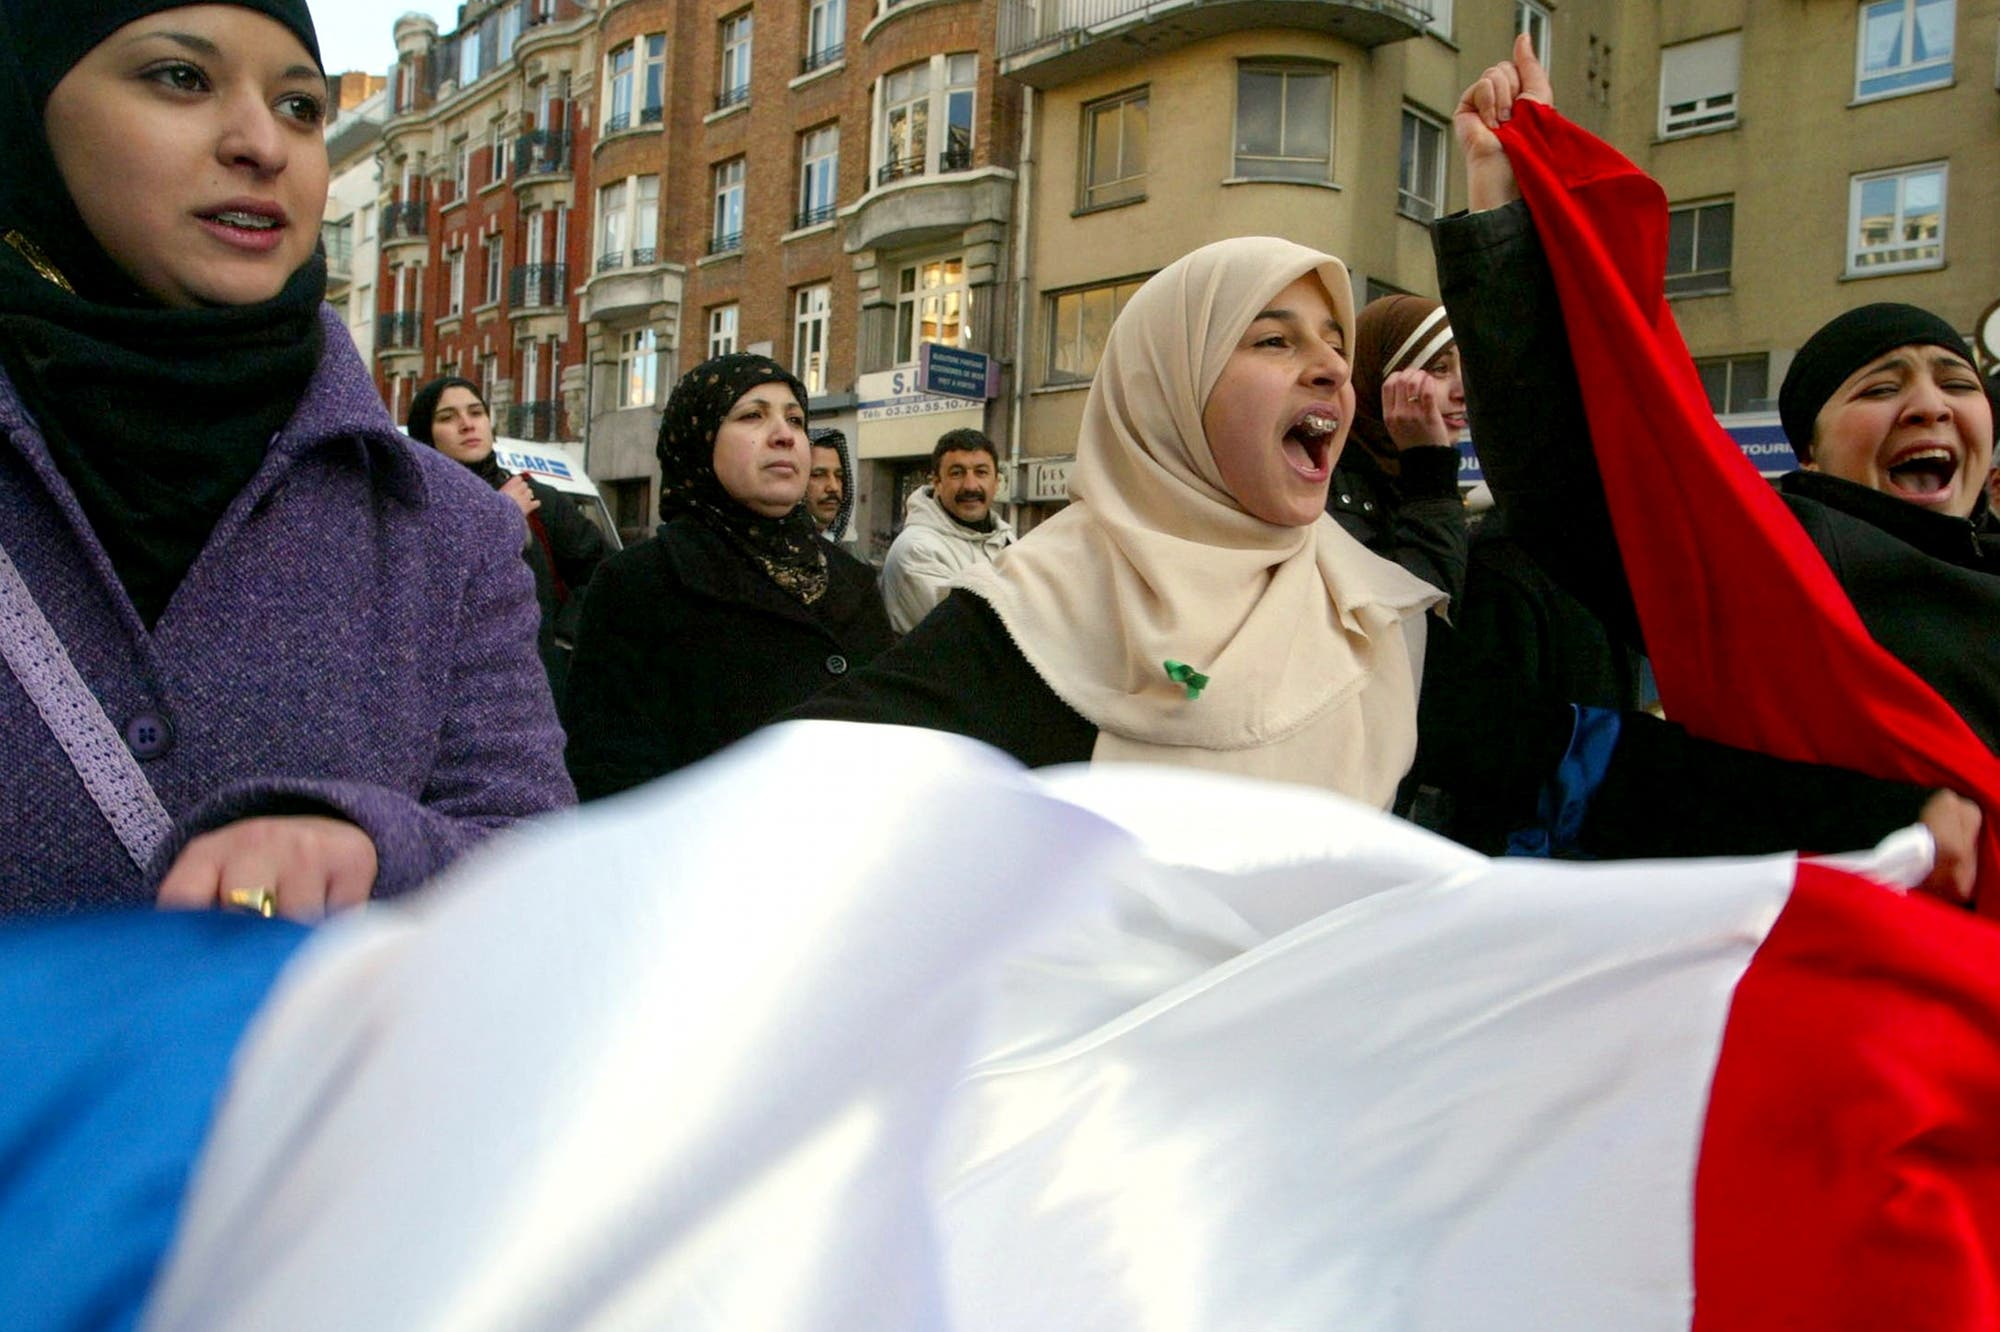 YOUNGS MUSLIMS HOLDING FRENCH FLAG  AND WEARING HEADSCARFS PROTEST IN THE STREETS OF LILLE